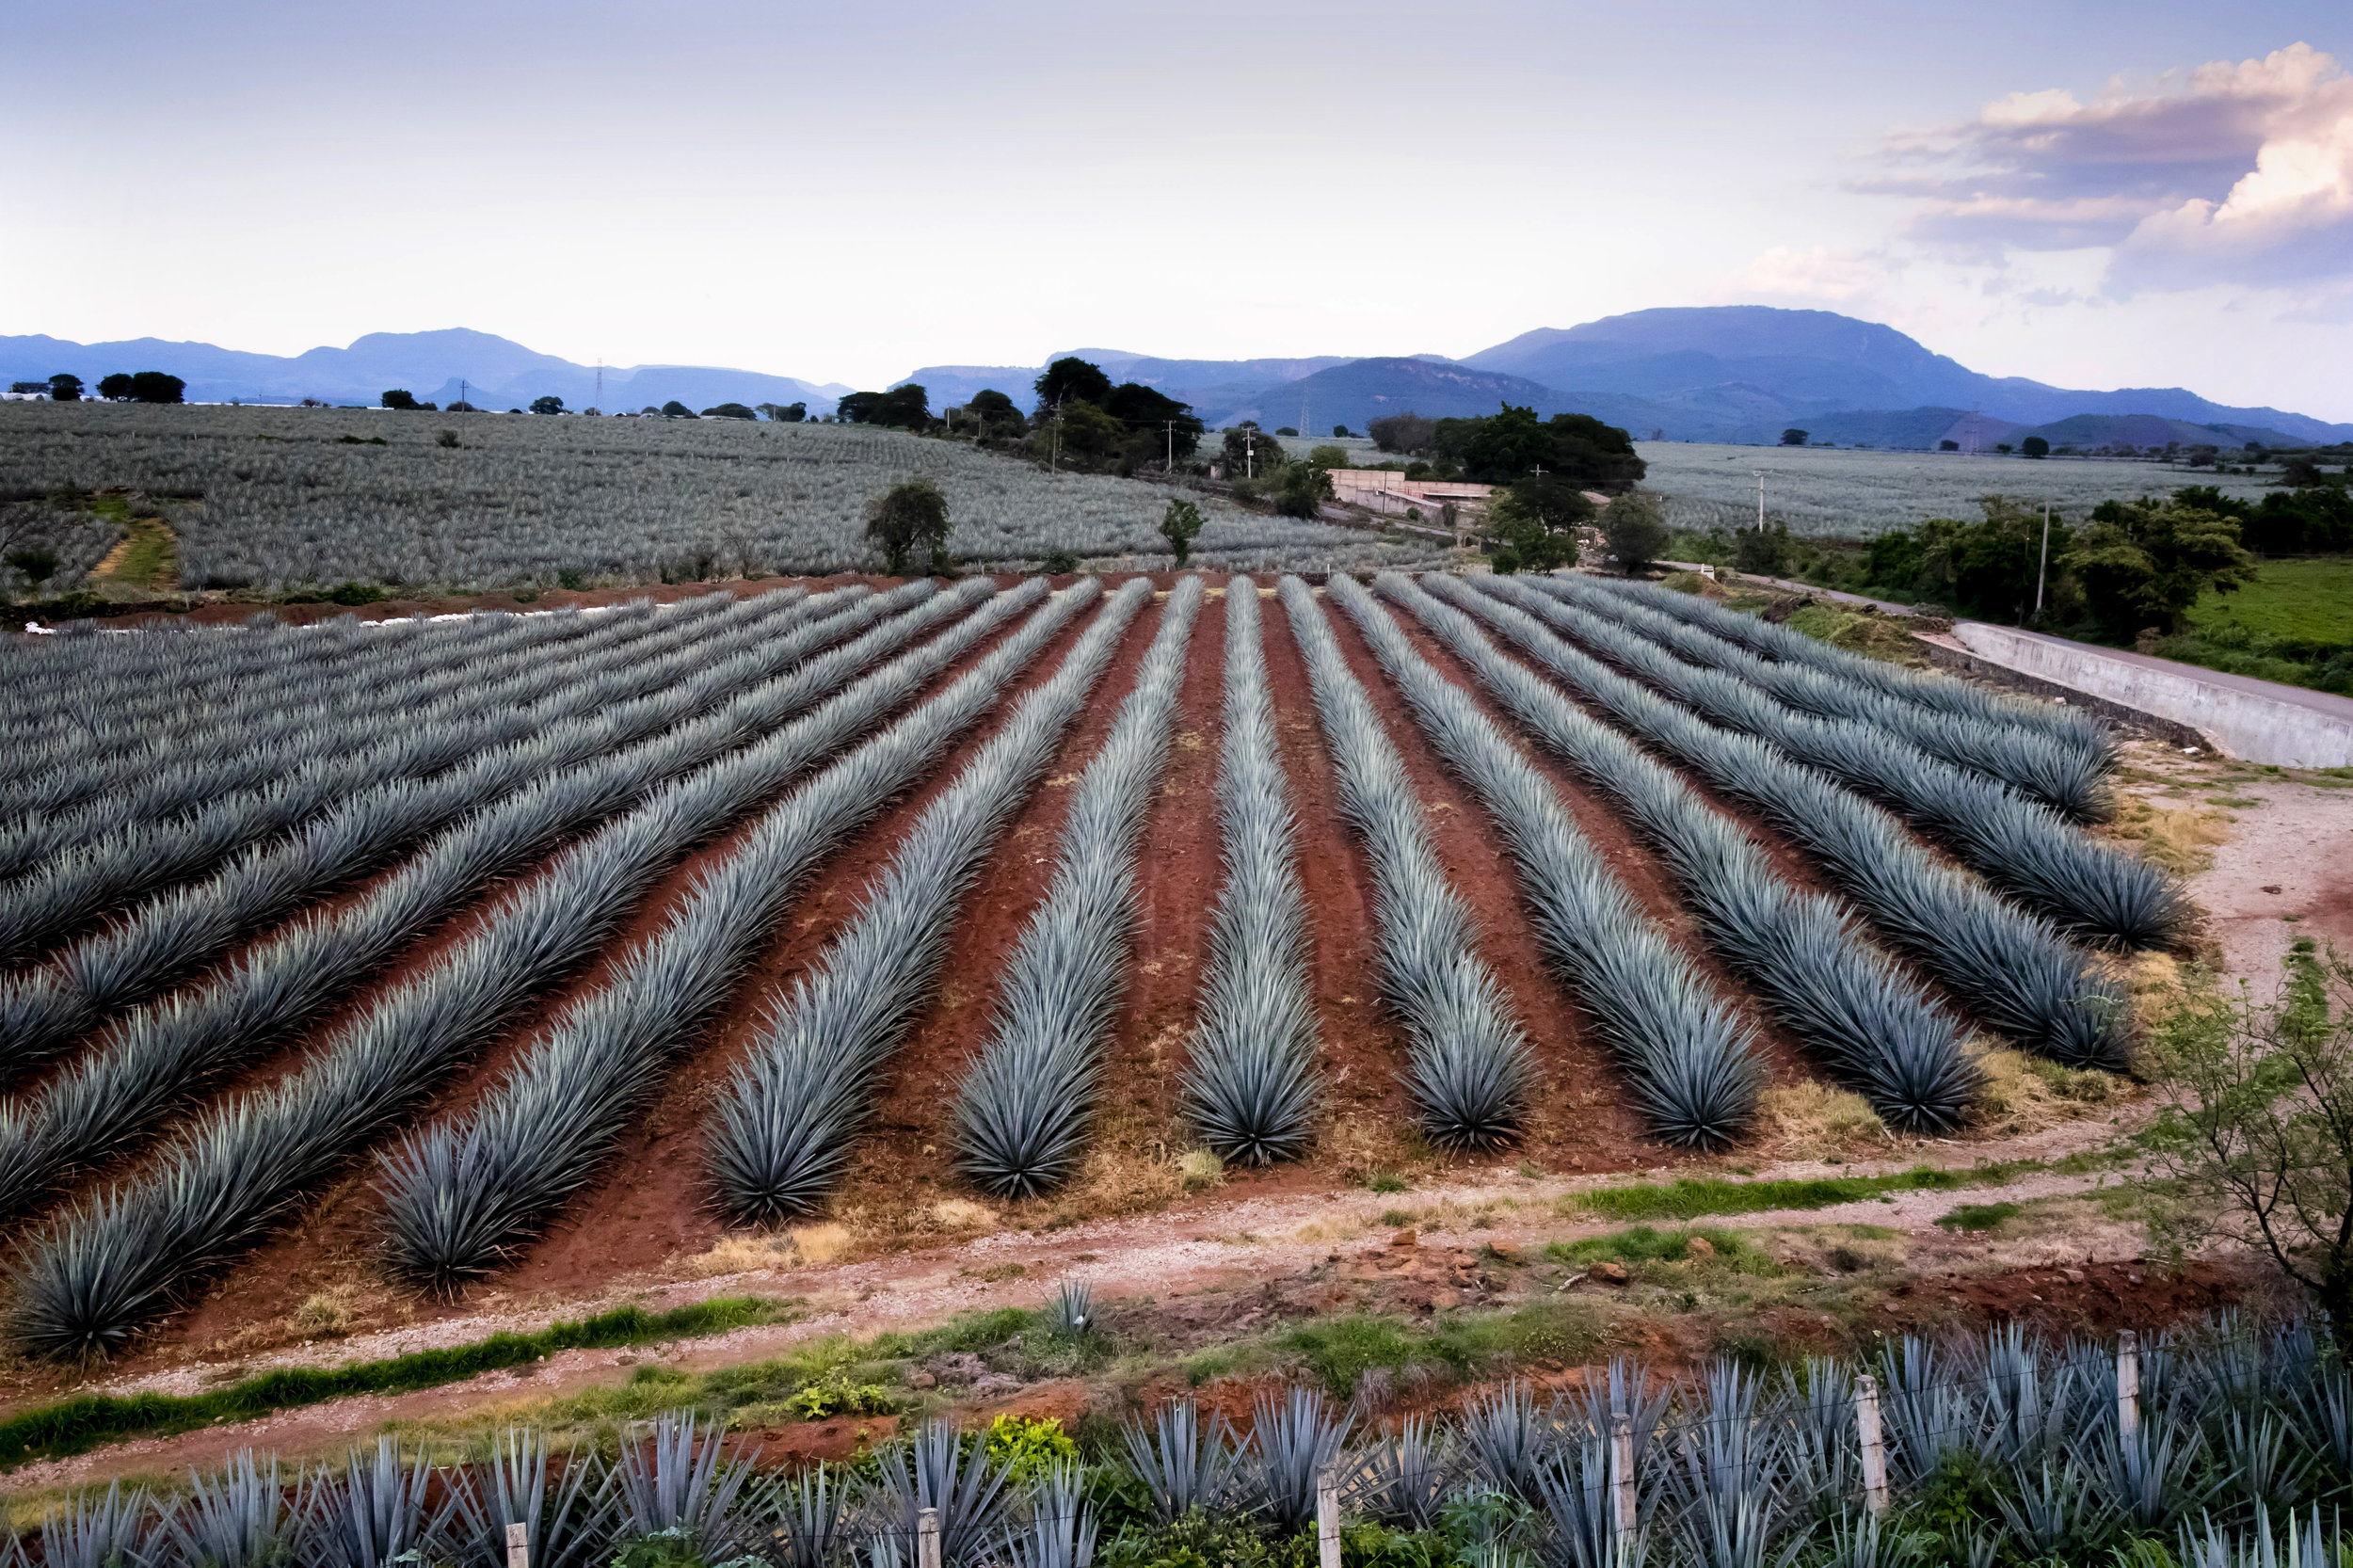 VincentIsore_Tequila002.JPG